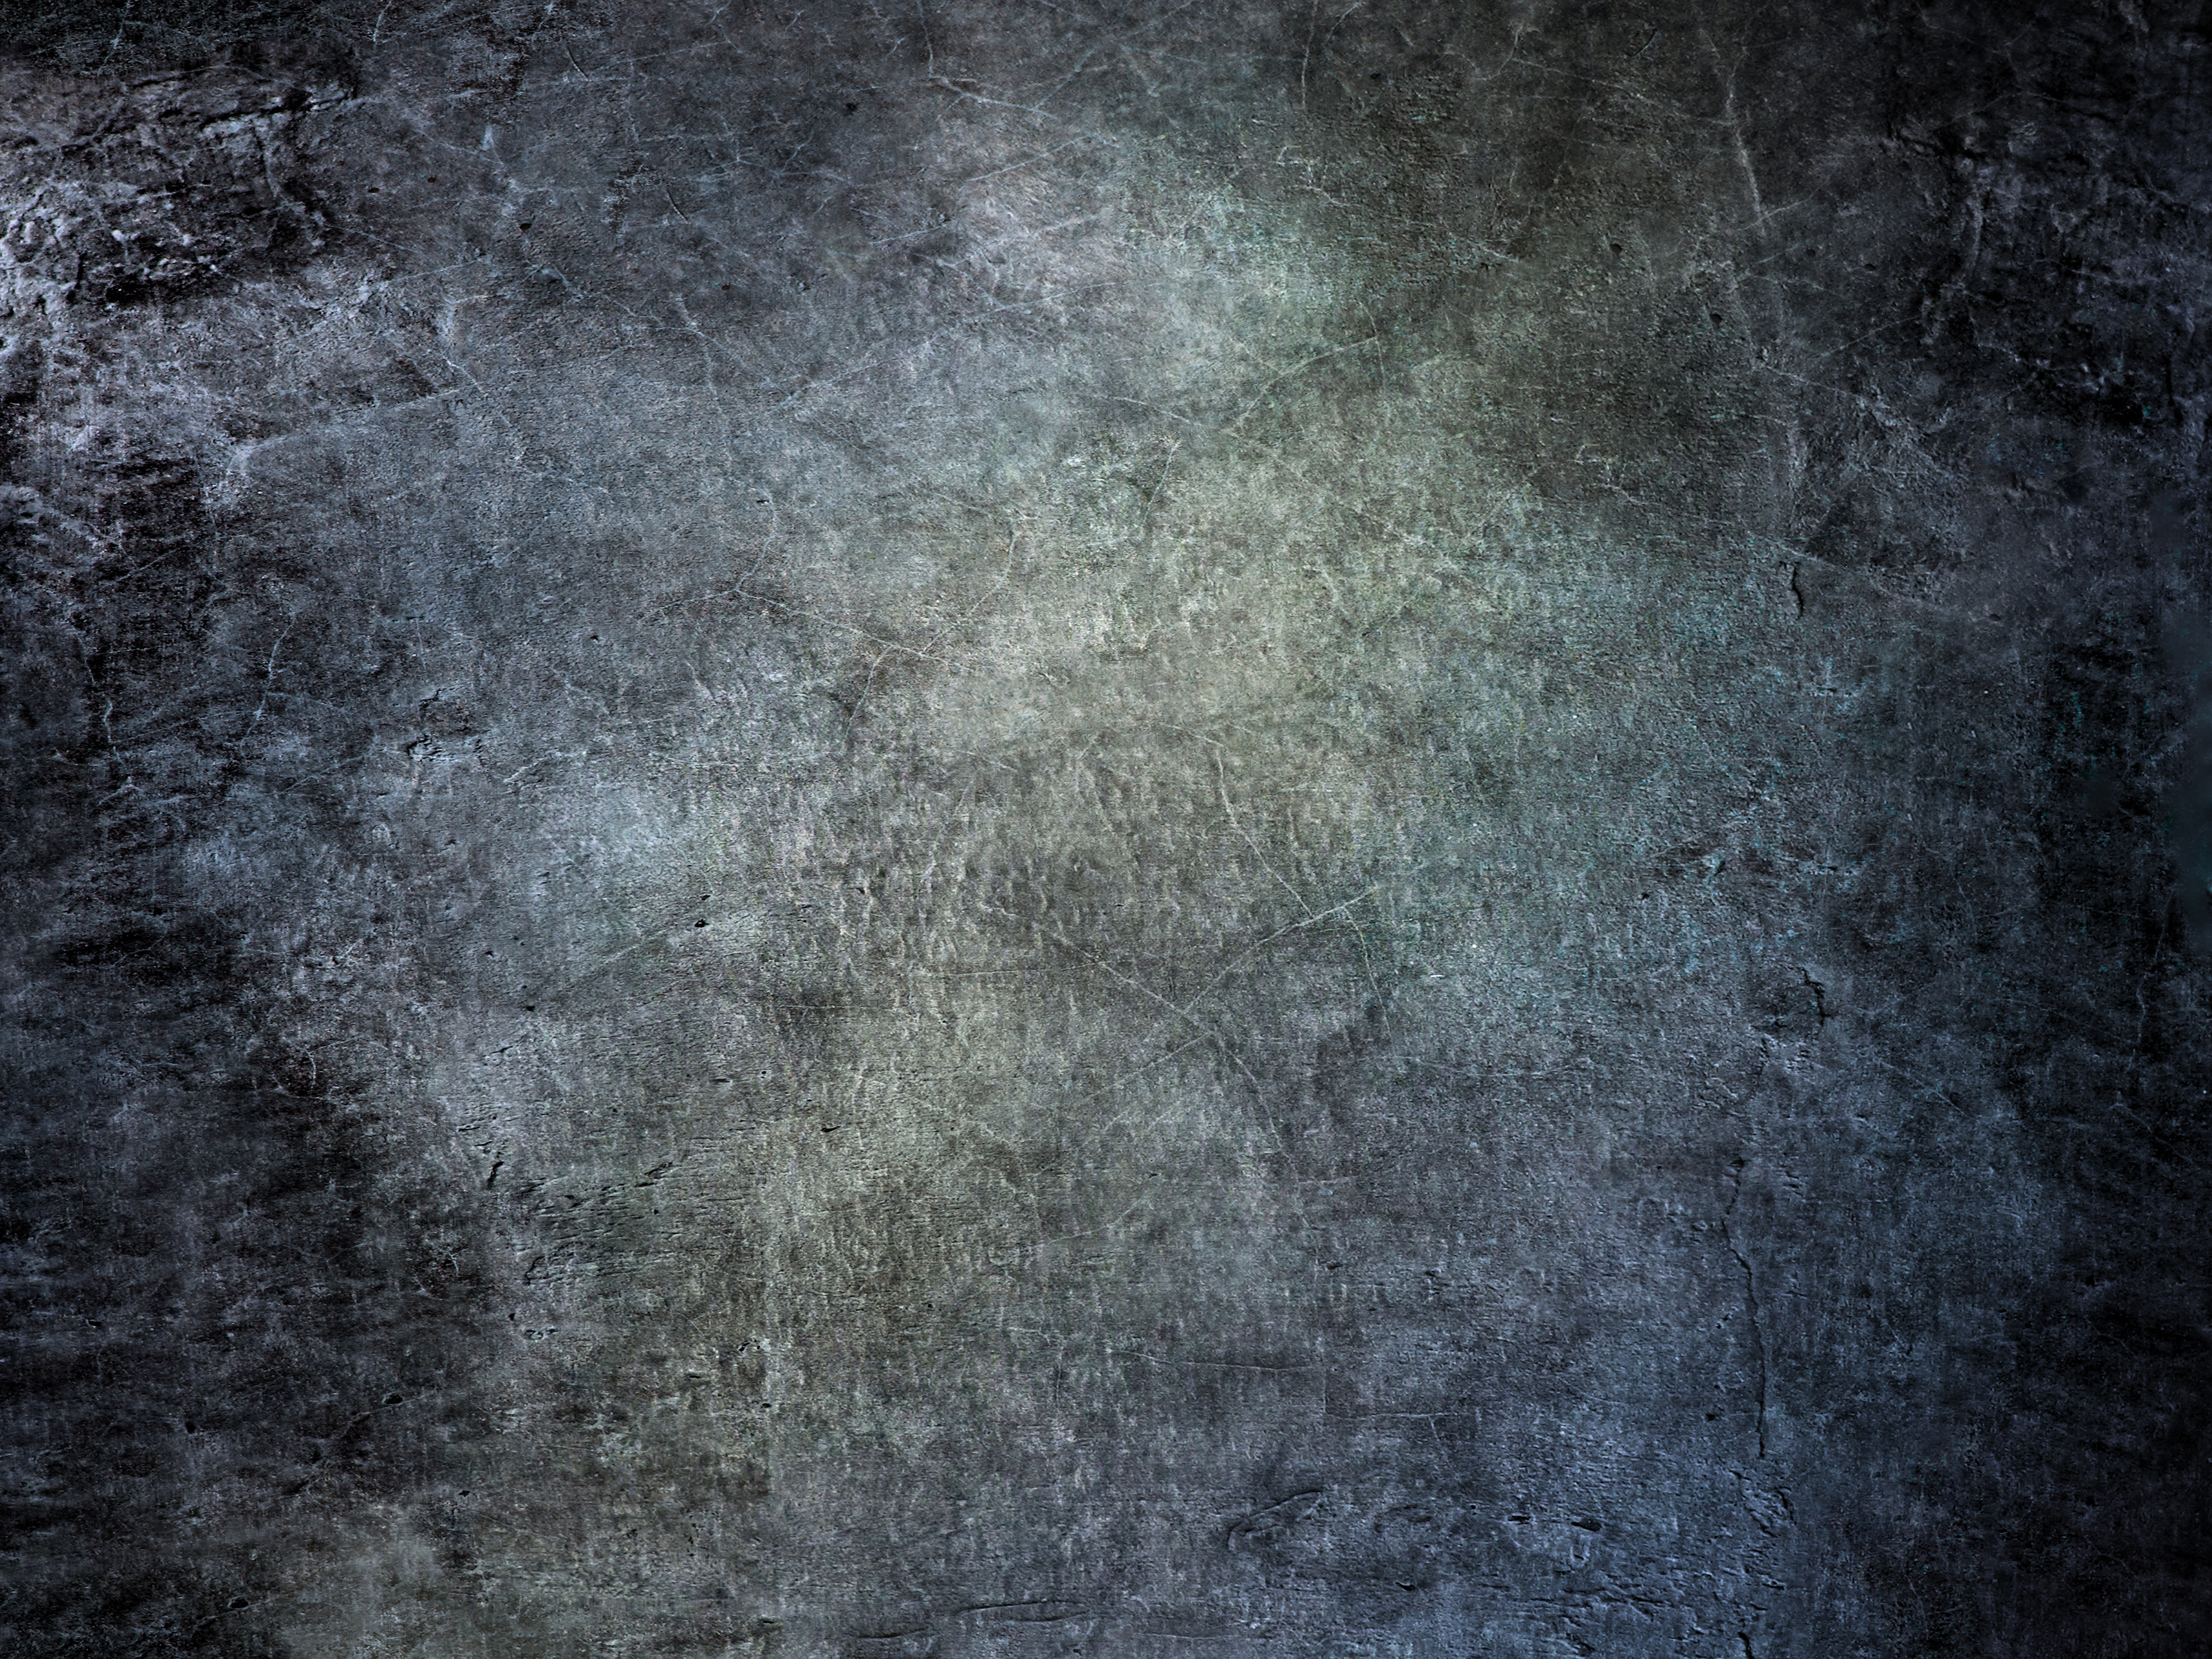 Texture 85 by Voyager168 on DeviantArt